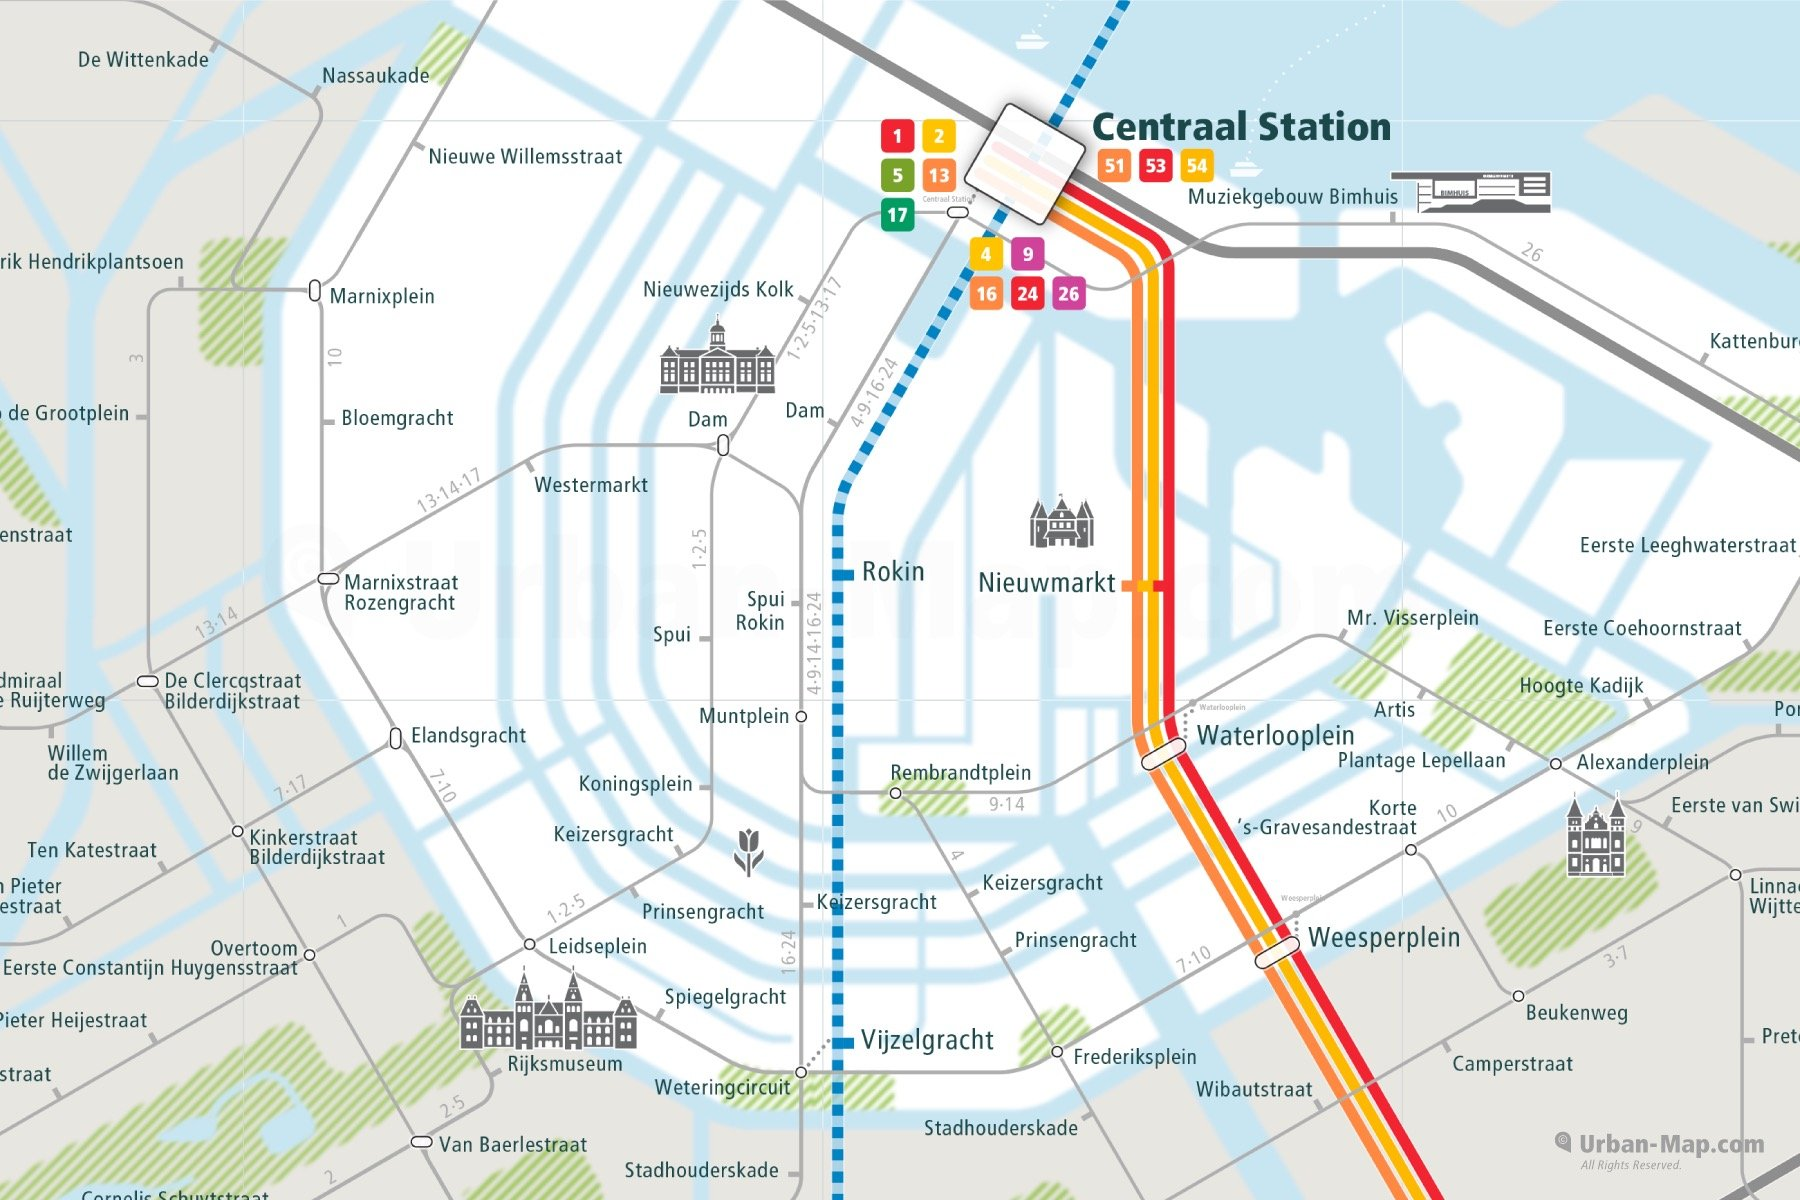 Amsterdam Subway Map.Amsterdam Rail Map A Smart City Guide Map Even Offline